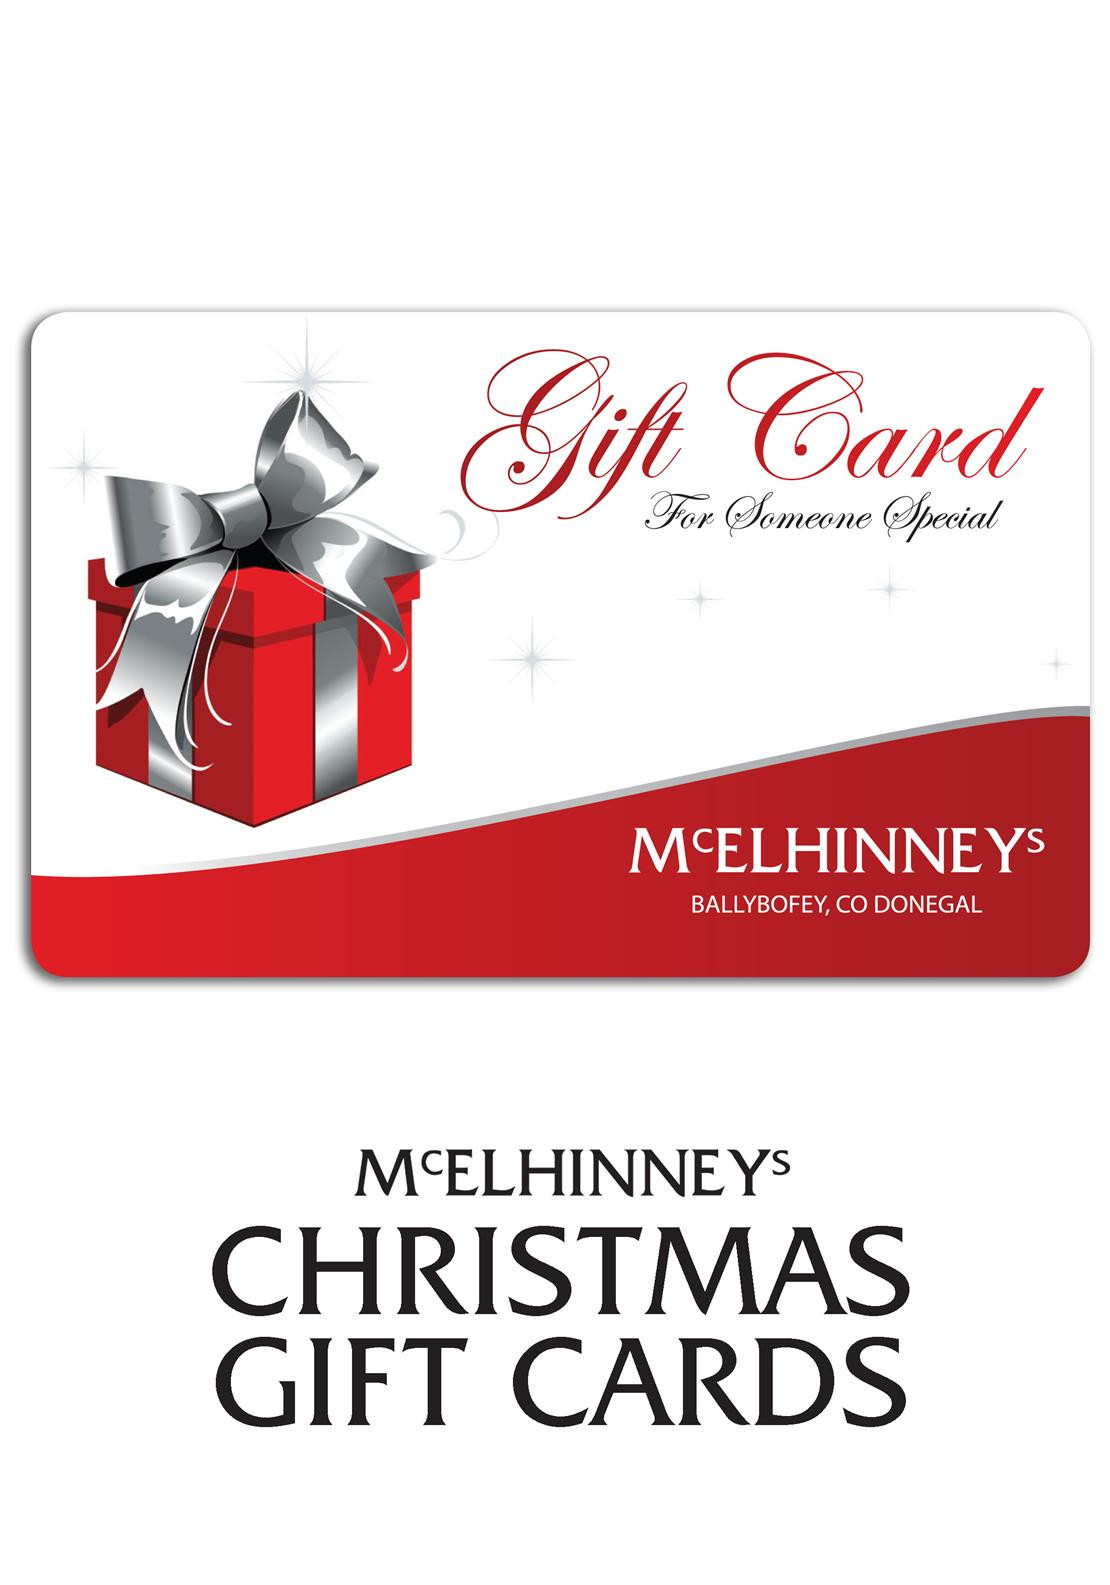 Purchase a McElhinneys Christmas Gift Card From €20...FREE Postage